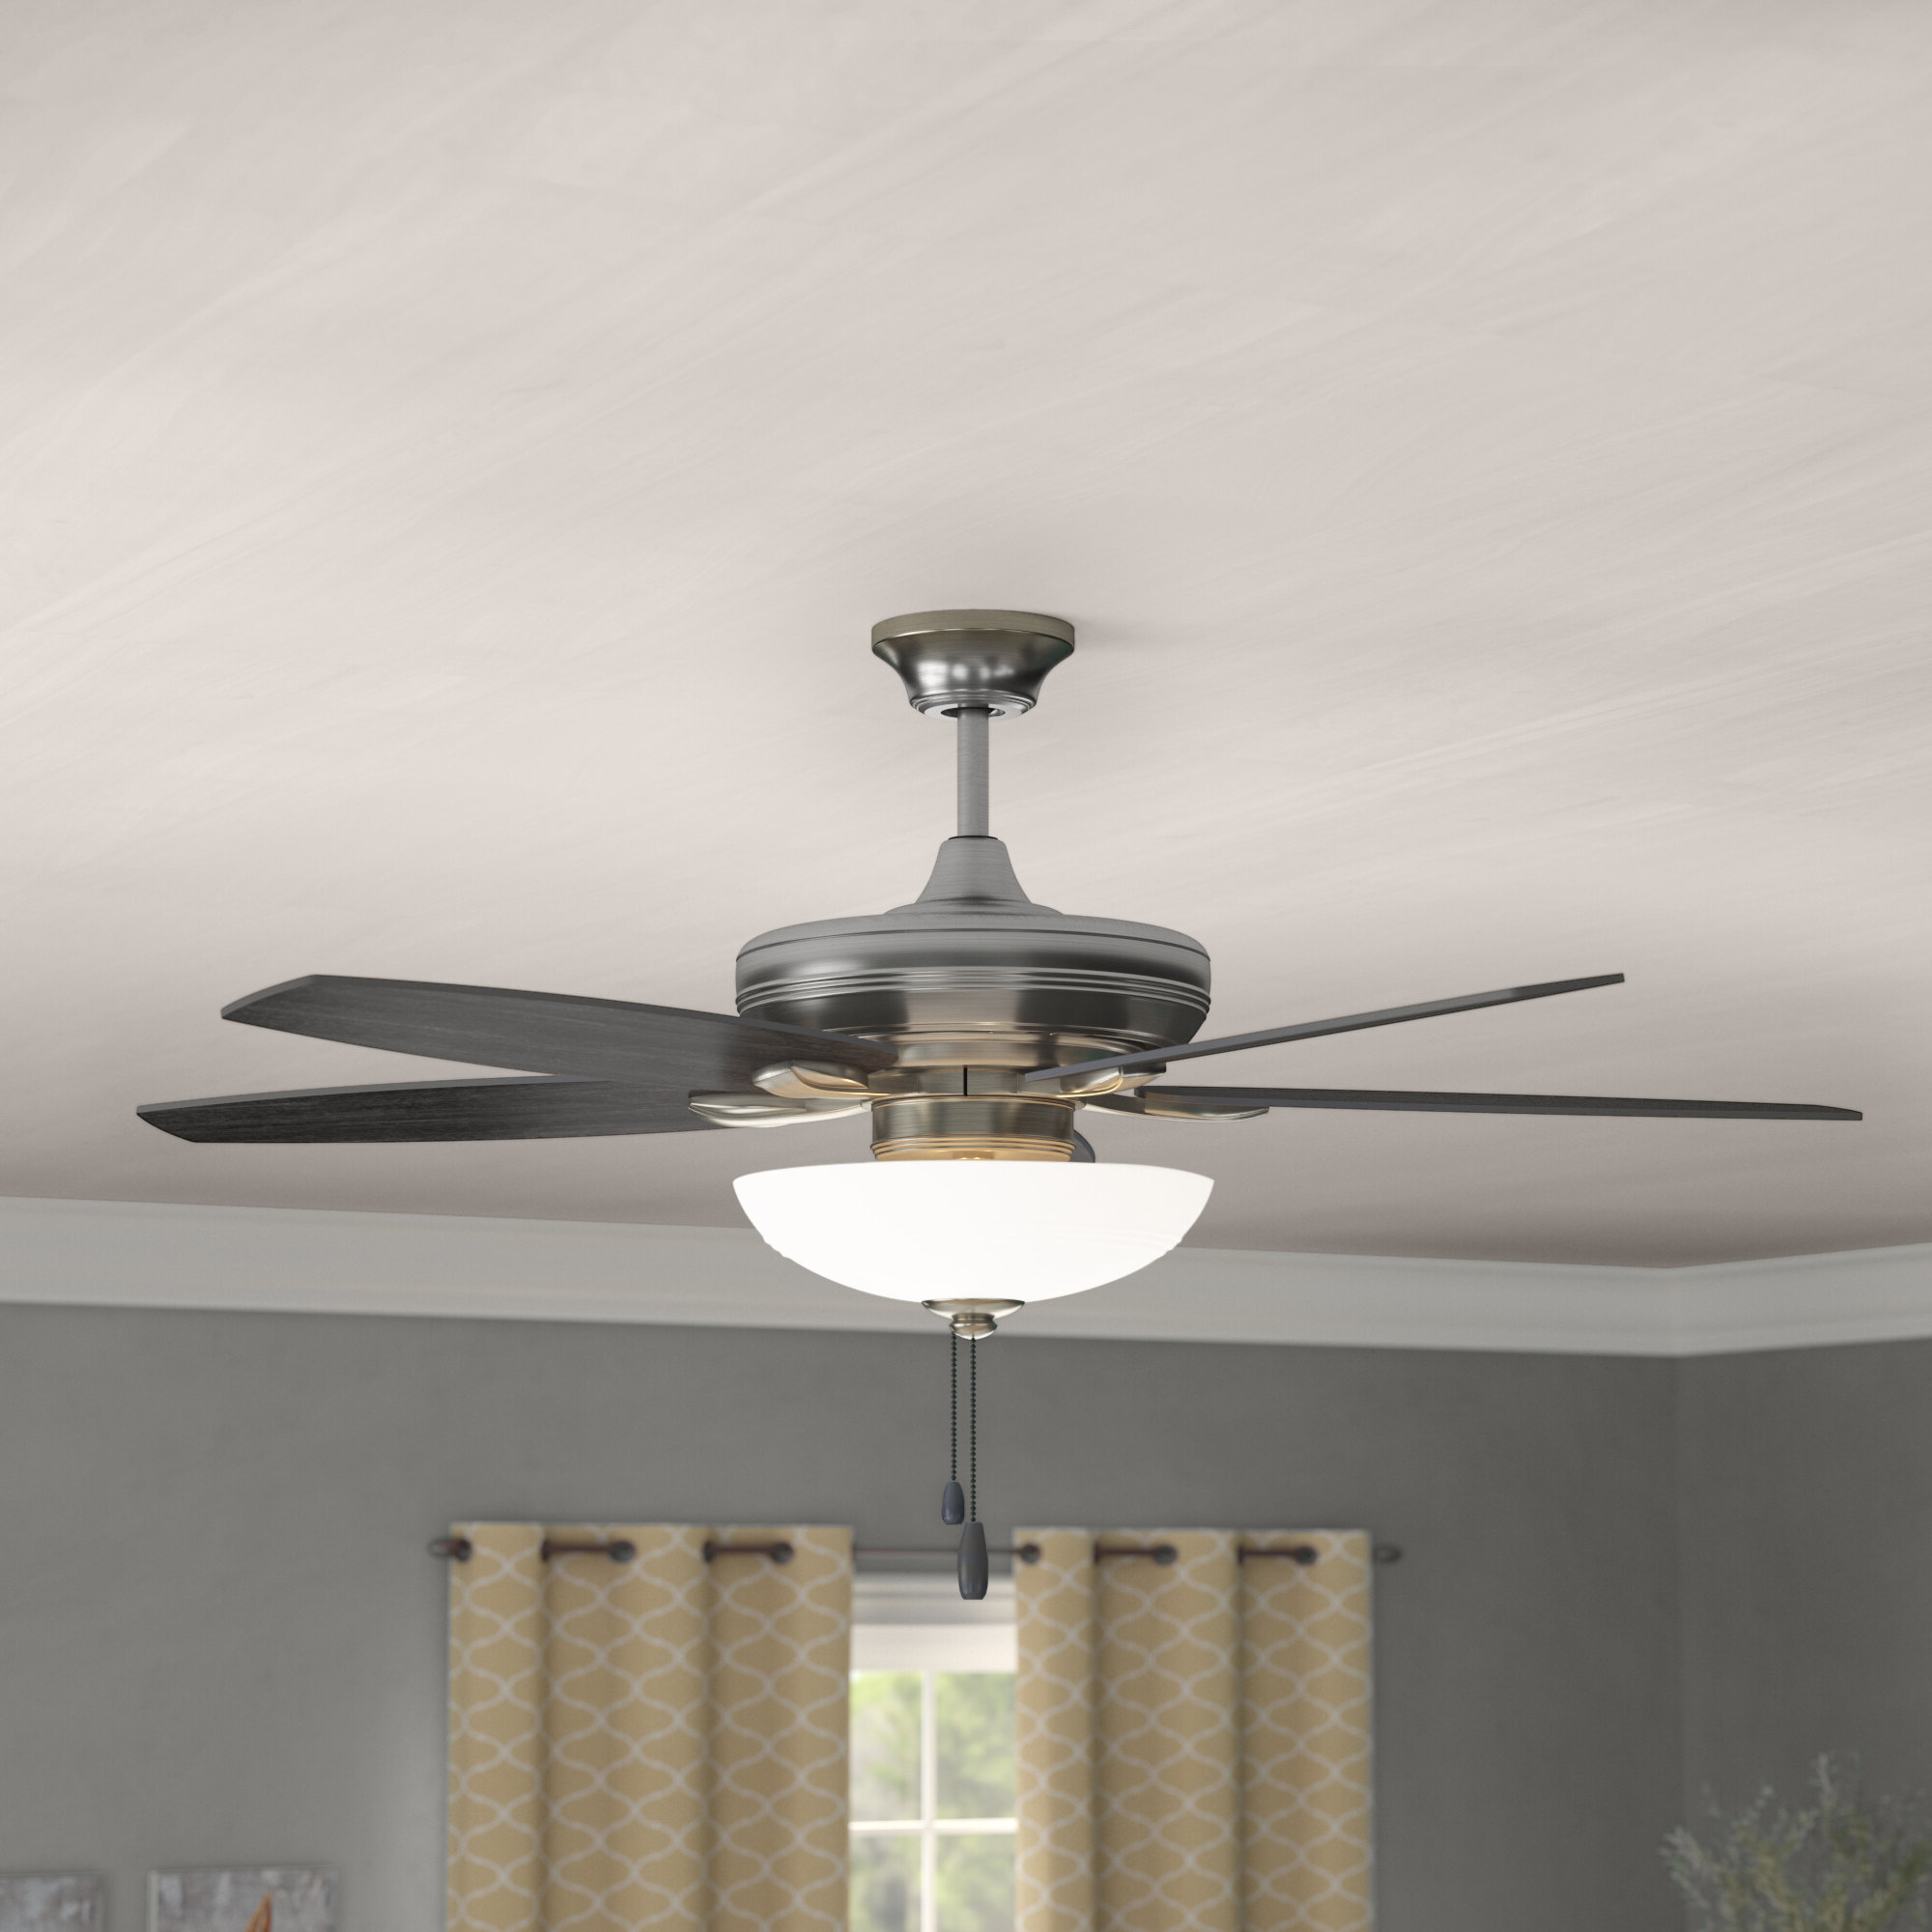 "52"" Millfield 5 Blades Led Ceiling Fan, Light Kit Included Throughout Current Auden 5 Blade Led Ceiling Fans (View 3 of 20)"